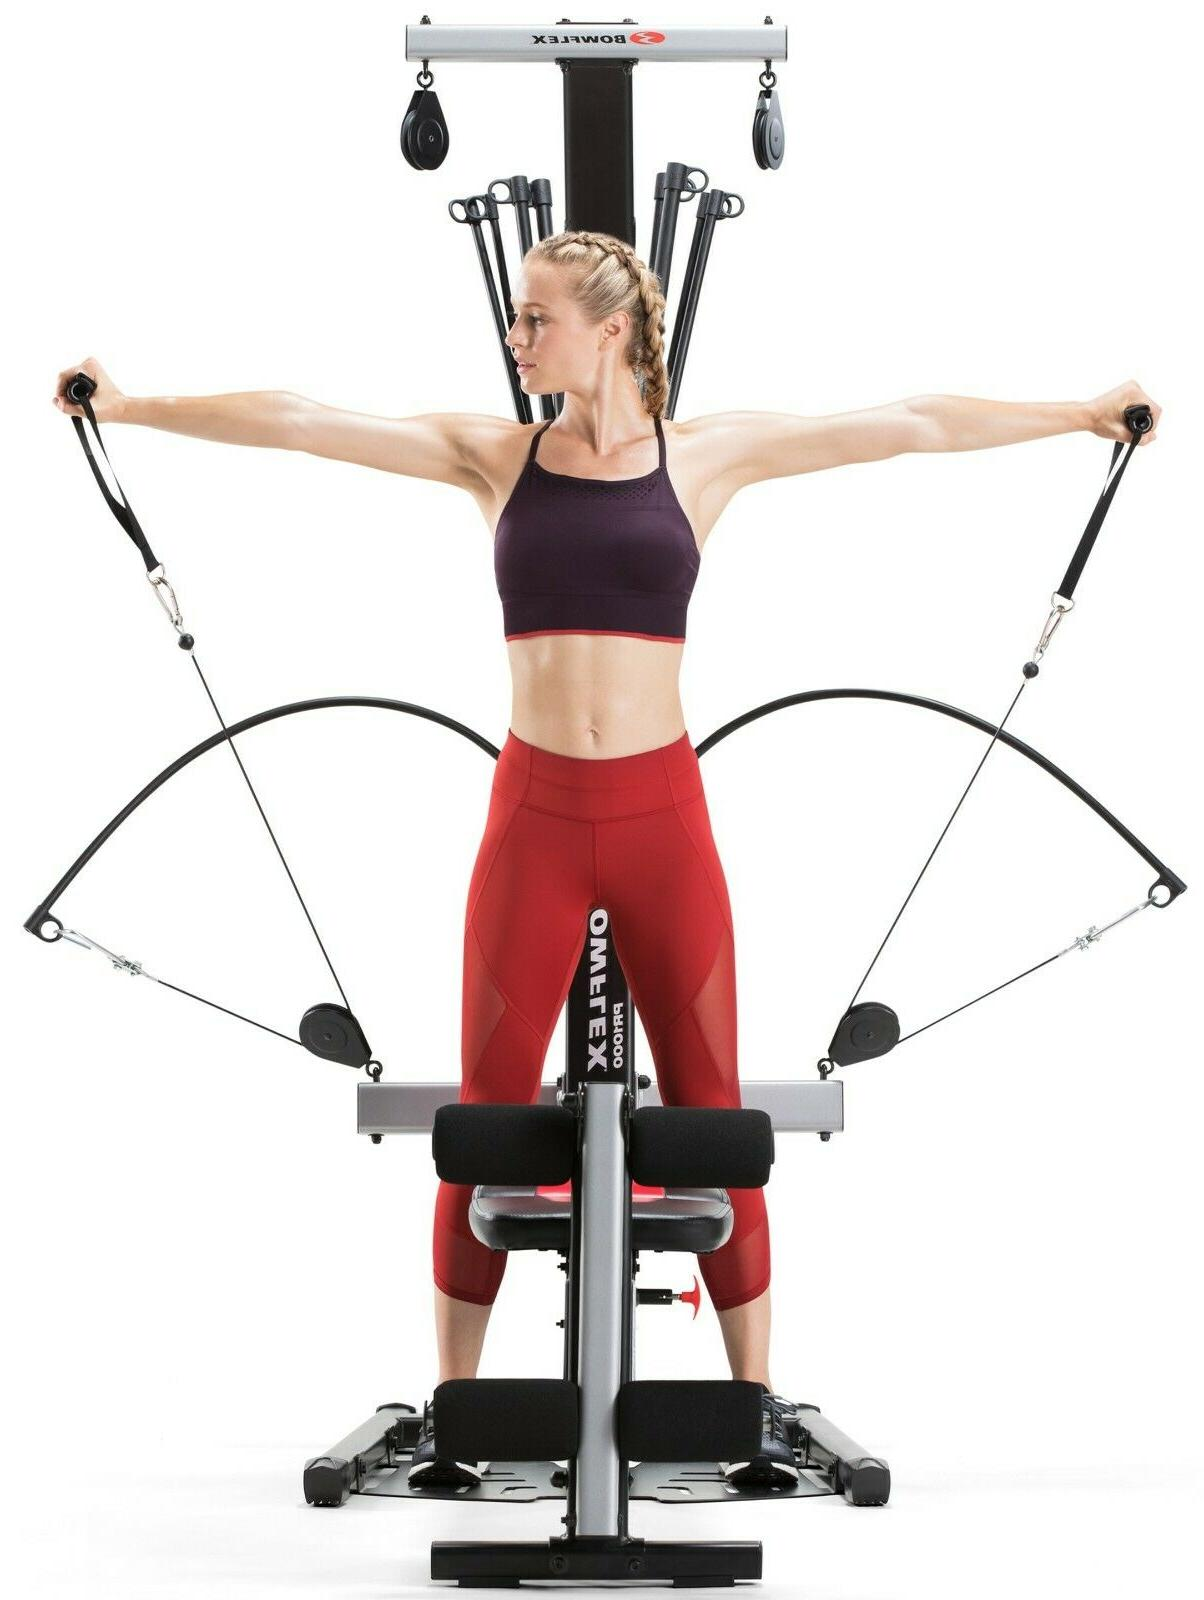 Bowflex Gym with 25+ exercises and rod